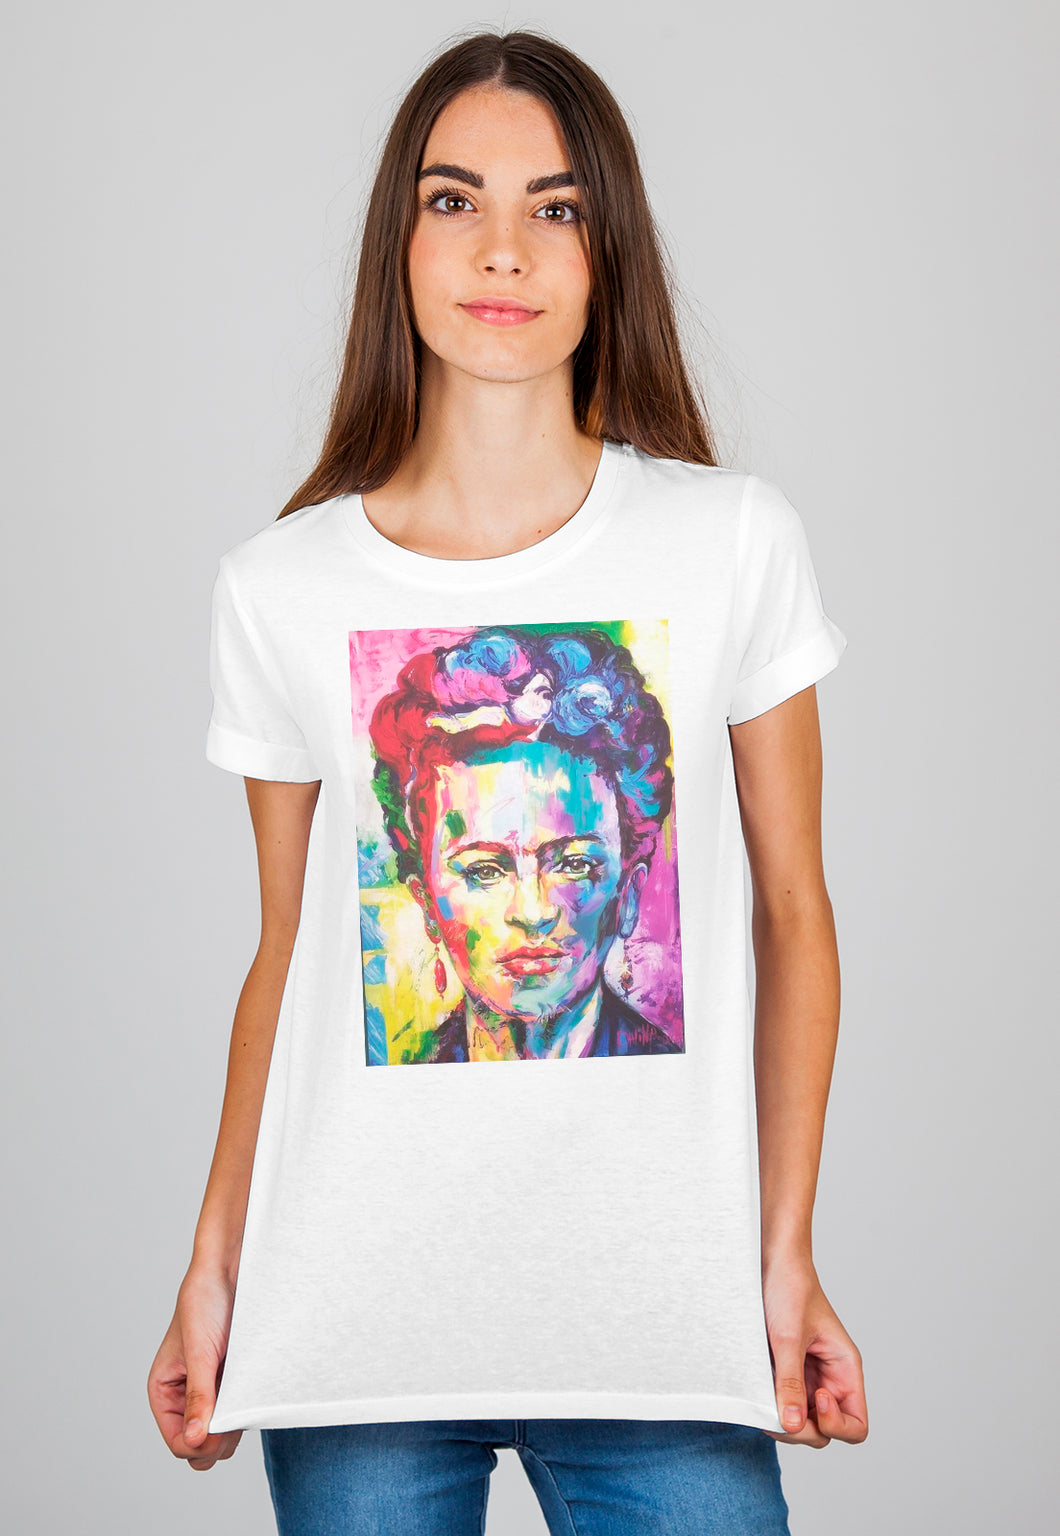 Camiseta Feminina Estampada Mirat - Frida Art